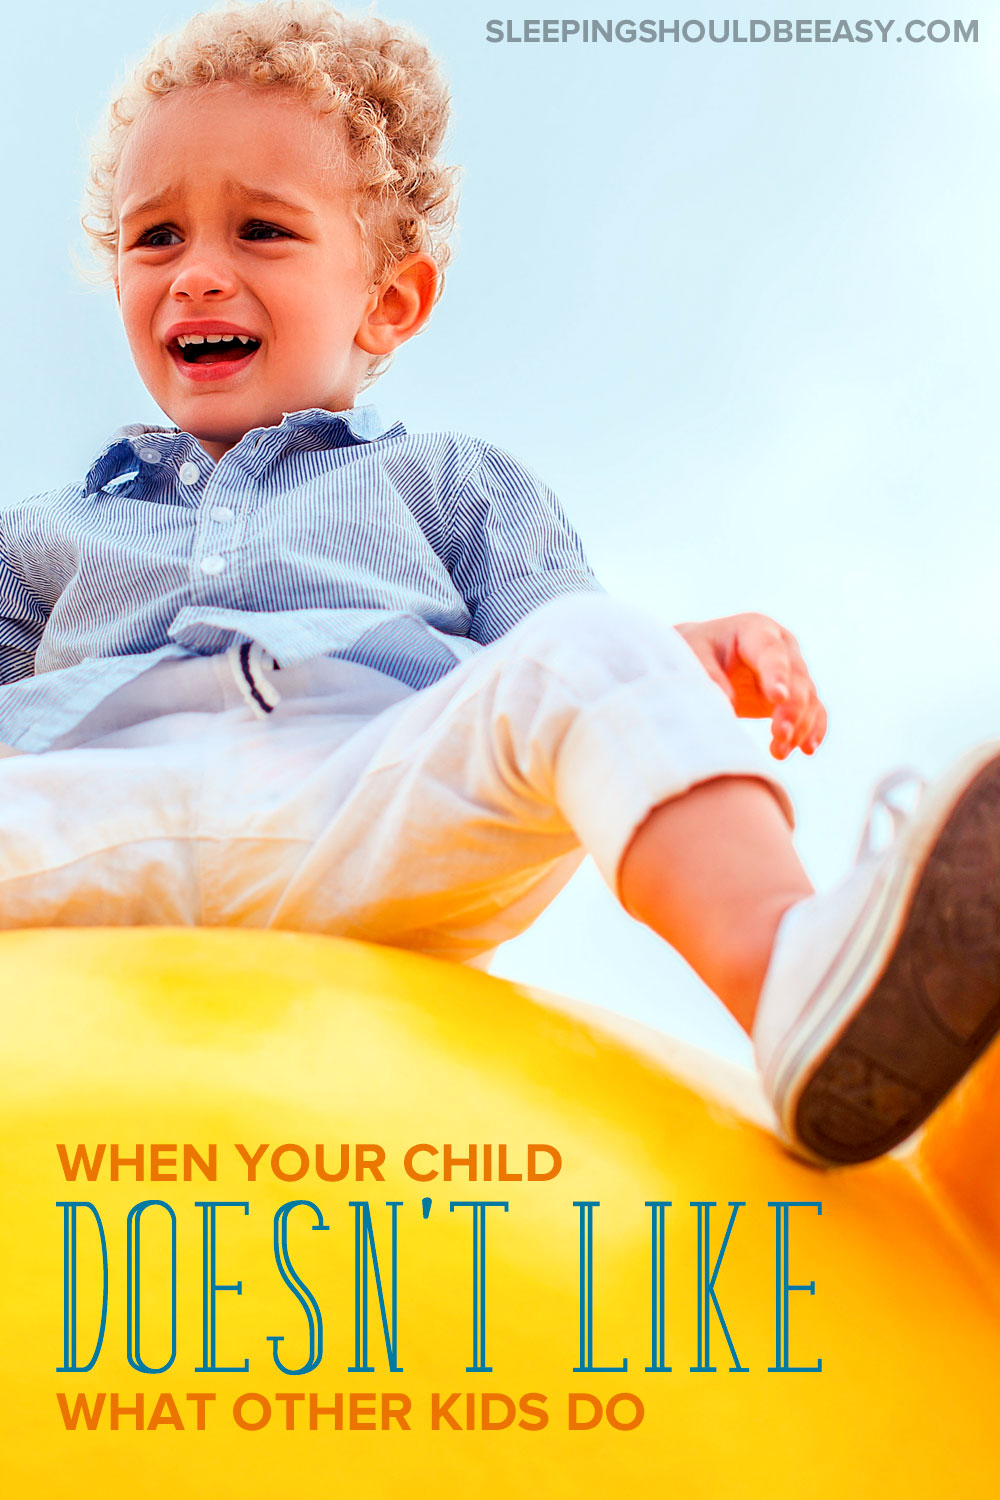 You worry when all kids seem to love swimming or going down the slide but yours doesn't. Here's what to do when your child doesn't like typical kid stuff.